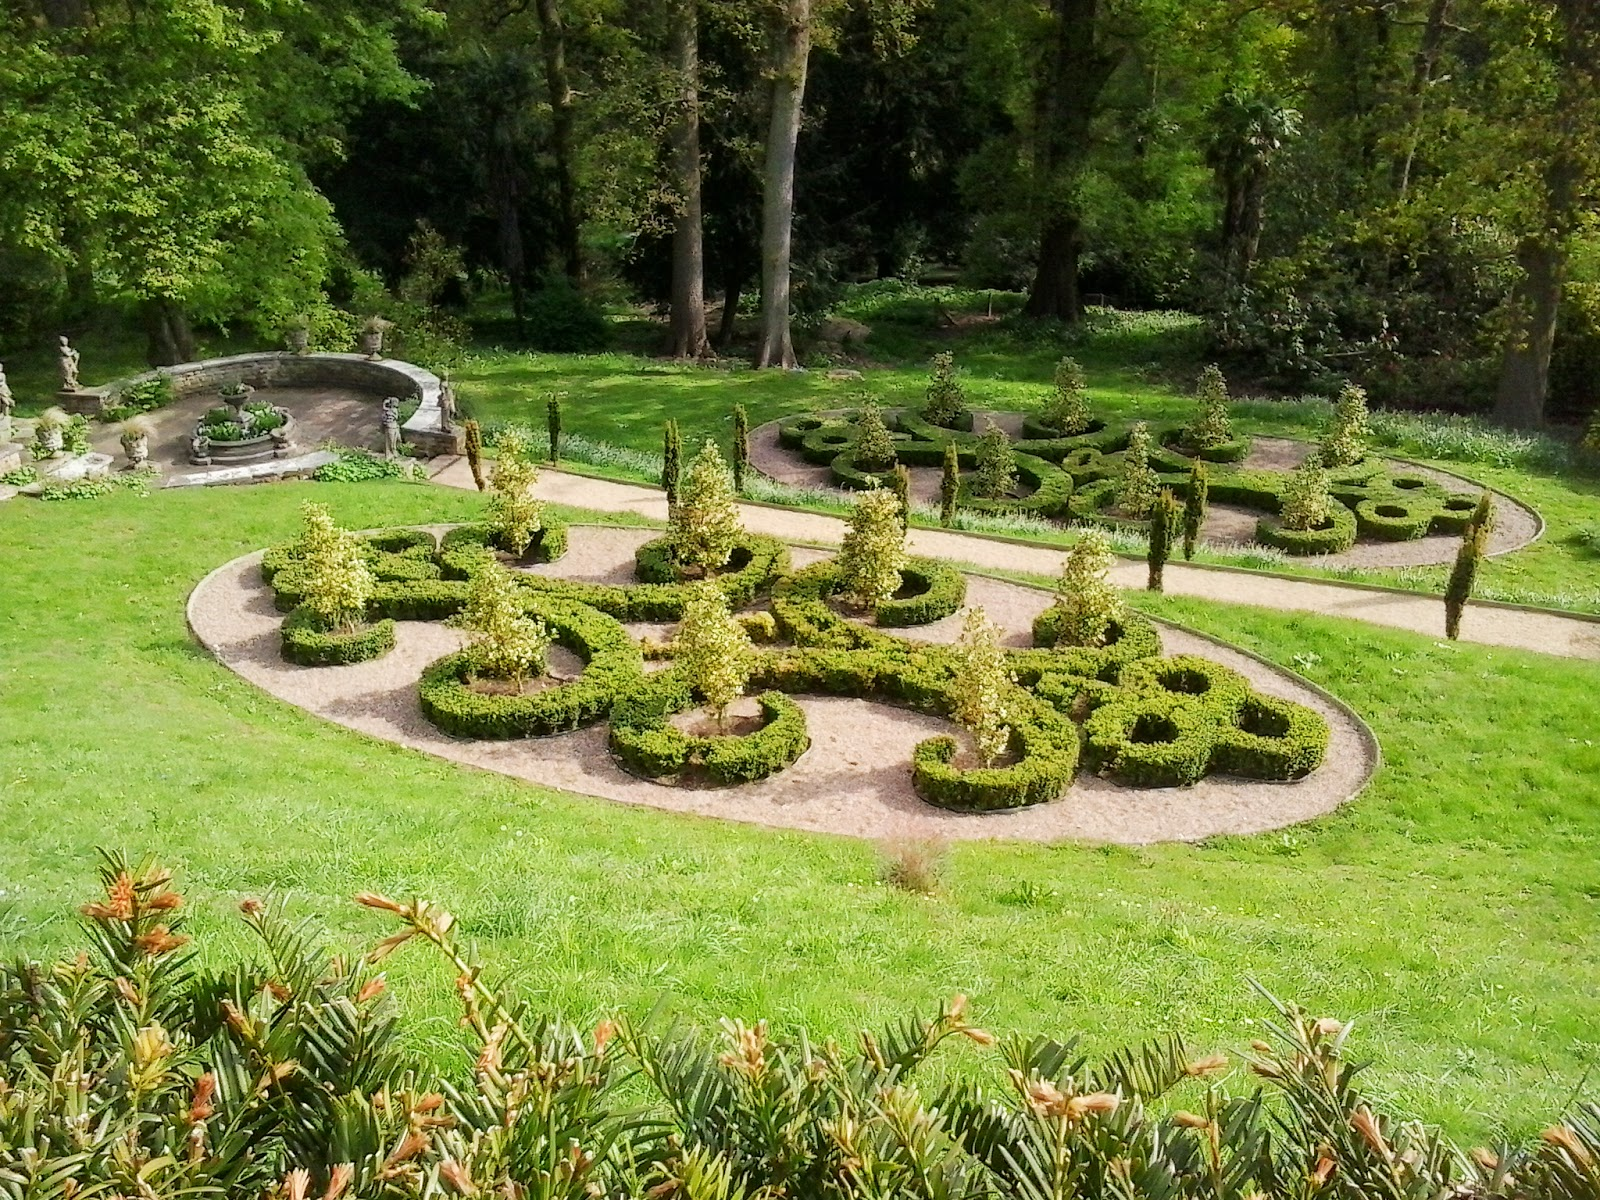 Pleasing Dan Community Ltd May  With Foxy Heritage Tour To Grantham And Belvoir Castle On Sunday  May With Awesome Oman Botanic Garden Also What Is The Garden Of Eden In Addition Rose Garden Apartments And Keukenhof Gardens Best Time To Visit As Well As Ride On Garden Railway Additionally Oil For Garden Furniture From Danartscouk With   Foxy Dan Community Ltd May  With Awesome Heritage Tour To Grantham And Belvoir Castle On Sunday  May And Pleasing Oman Botanic Garden Also What Is The Garden Of Eden In Addition Rose Garden Apartments From Danartscouk